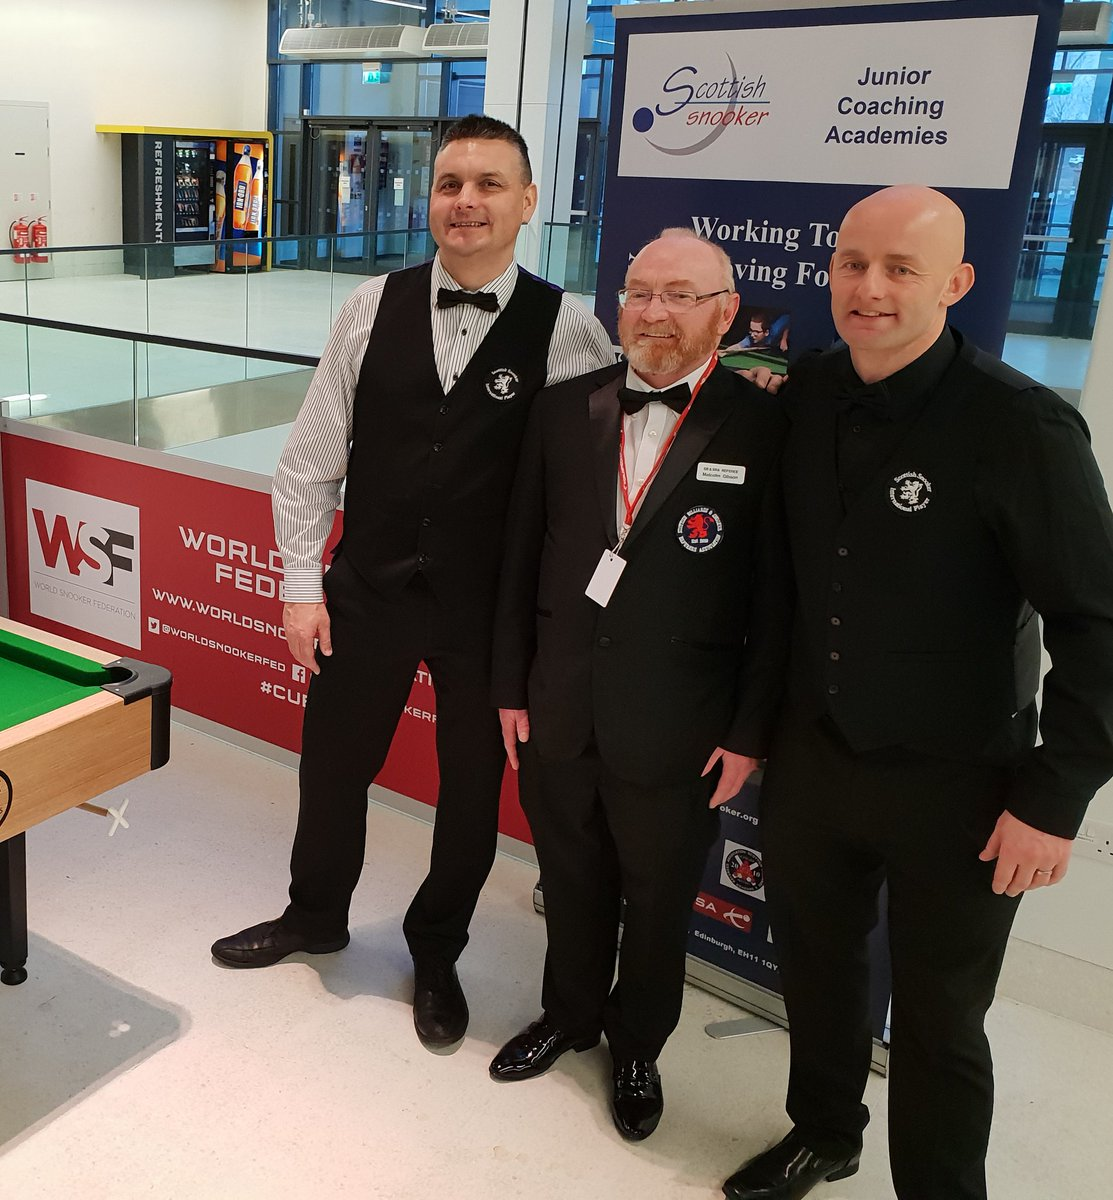 An absolutely fantastic day for Scottish Amateur Snooker yesterday at World Snookers Bet Victor Scottish Open. A big thank you to World Snooker & WPBSA for facilitating this marvellous opportunity to play 2 of our National Finals, refereed by our very own Scottish Referees!!